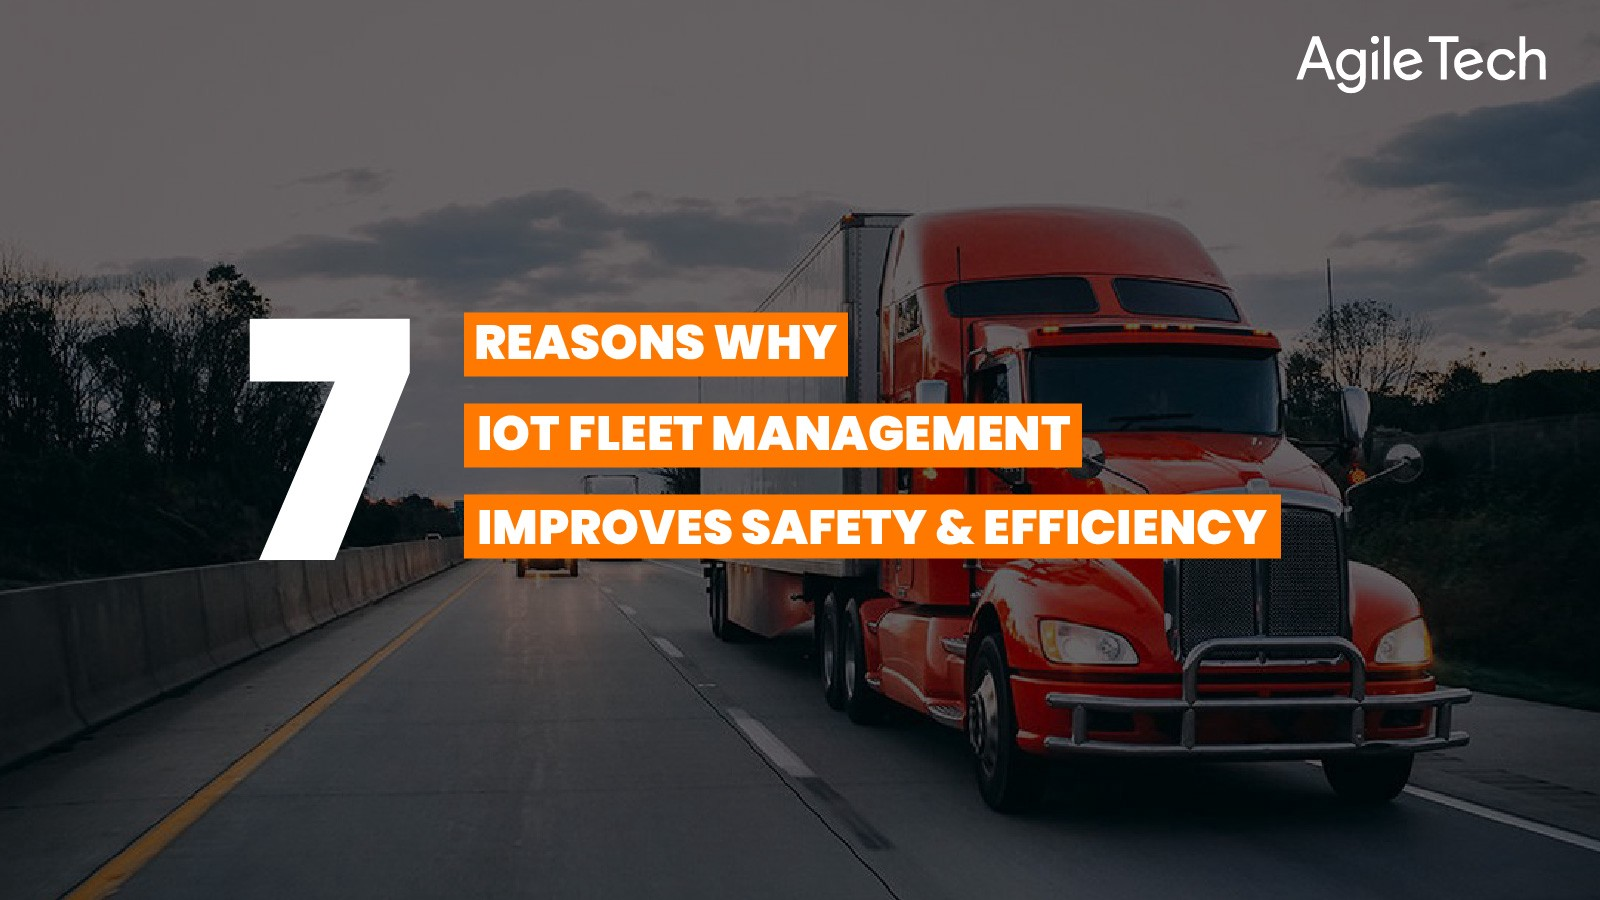 iot solutions for fleet management, 7 reasons why iot fleet management improves safety and efficiency